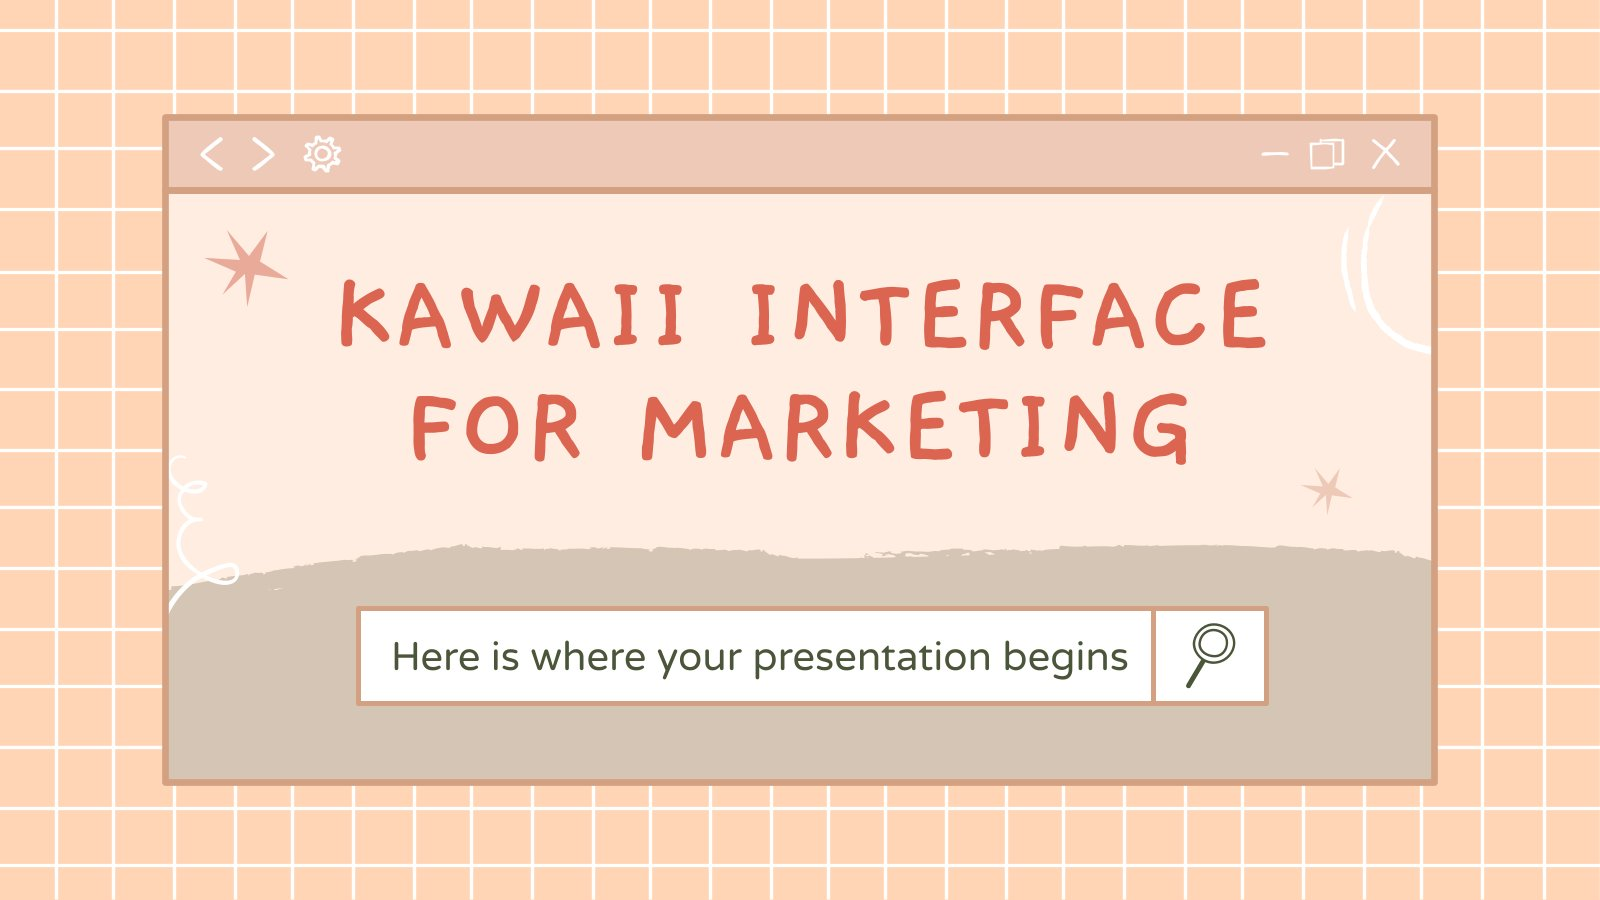 Modelo de apresentação Interface kawaii para marketing